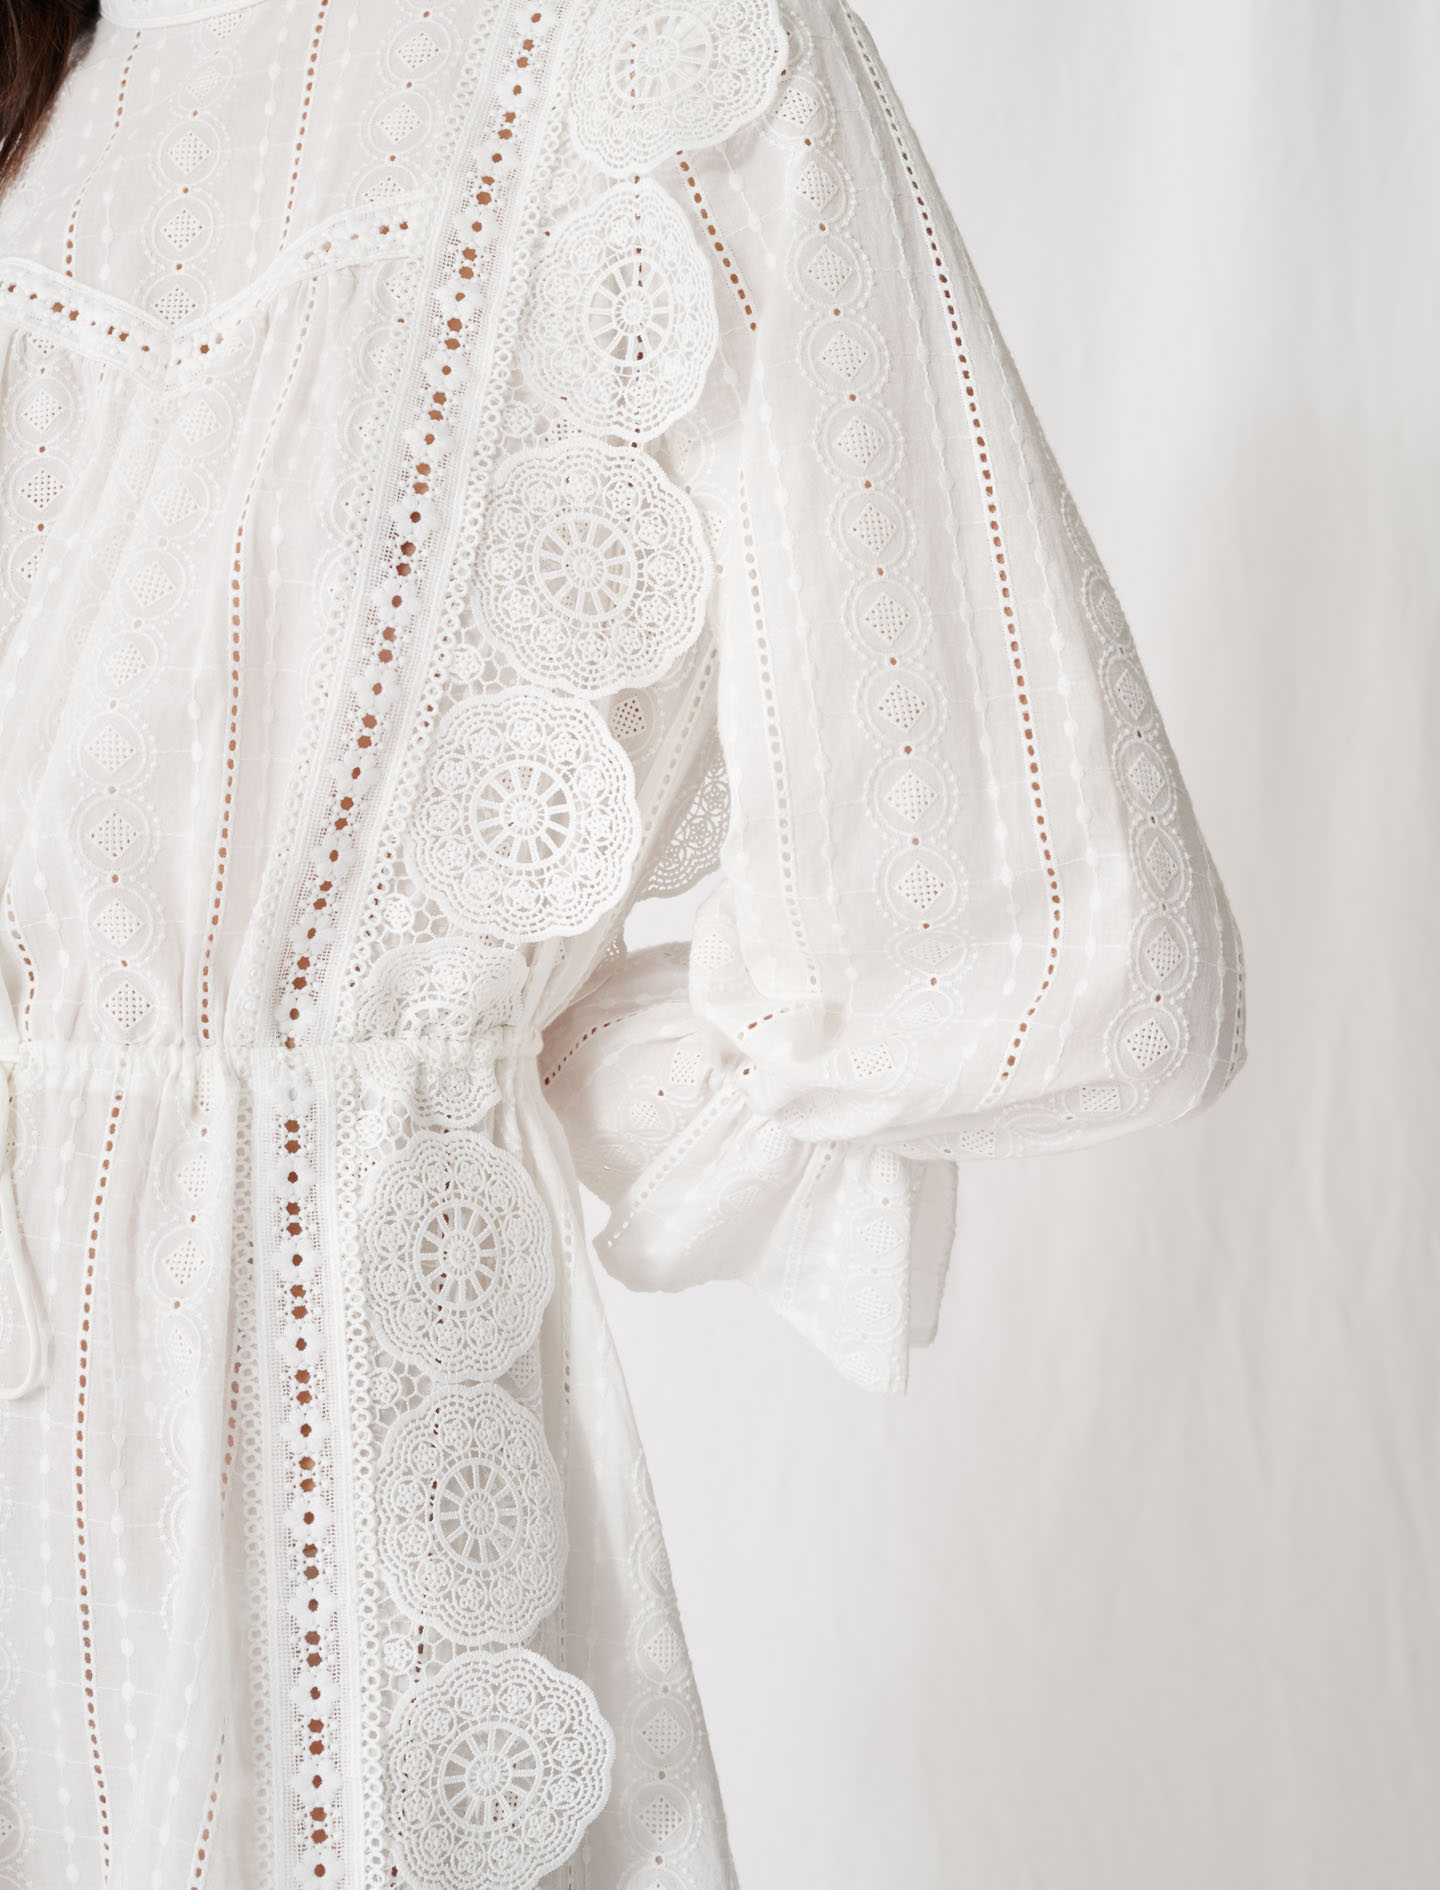 White dress with broderie anglaise - White